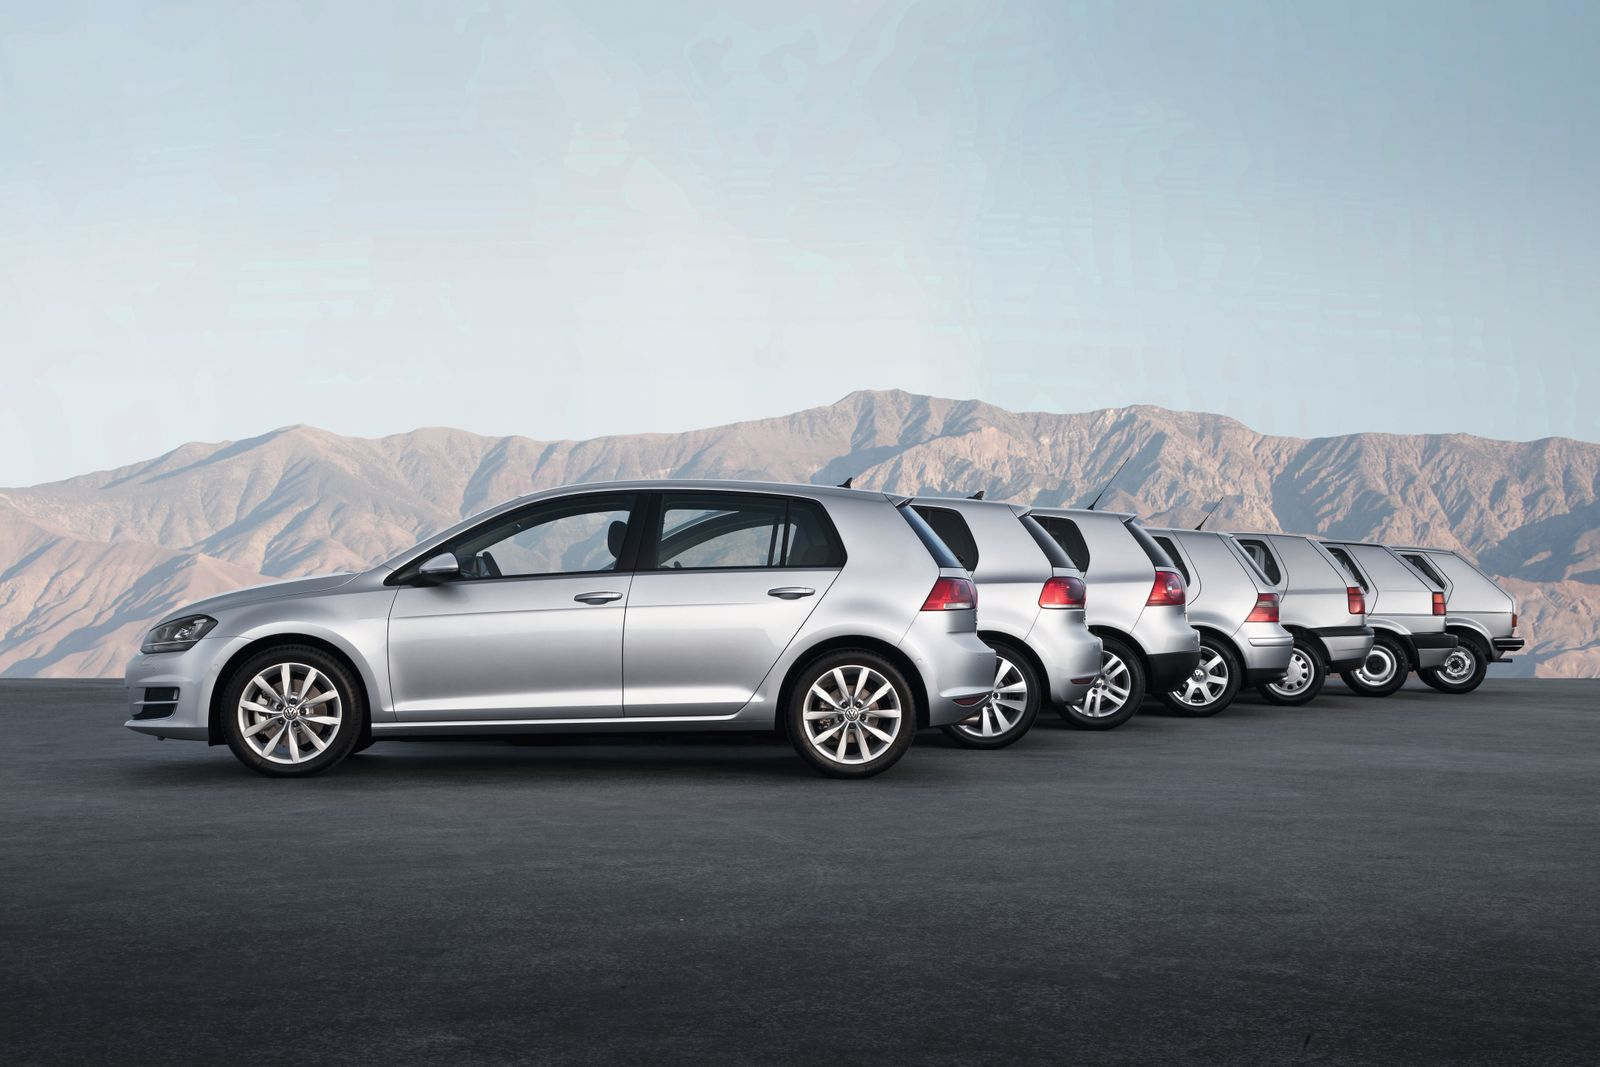 Volkswagen Golf - Generation one to seven